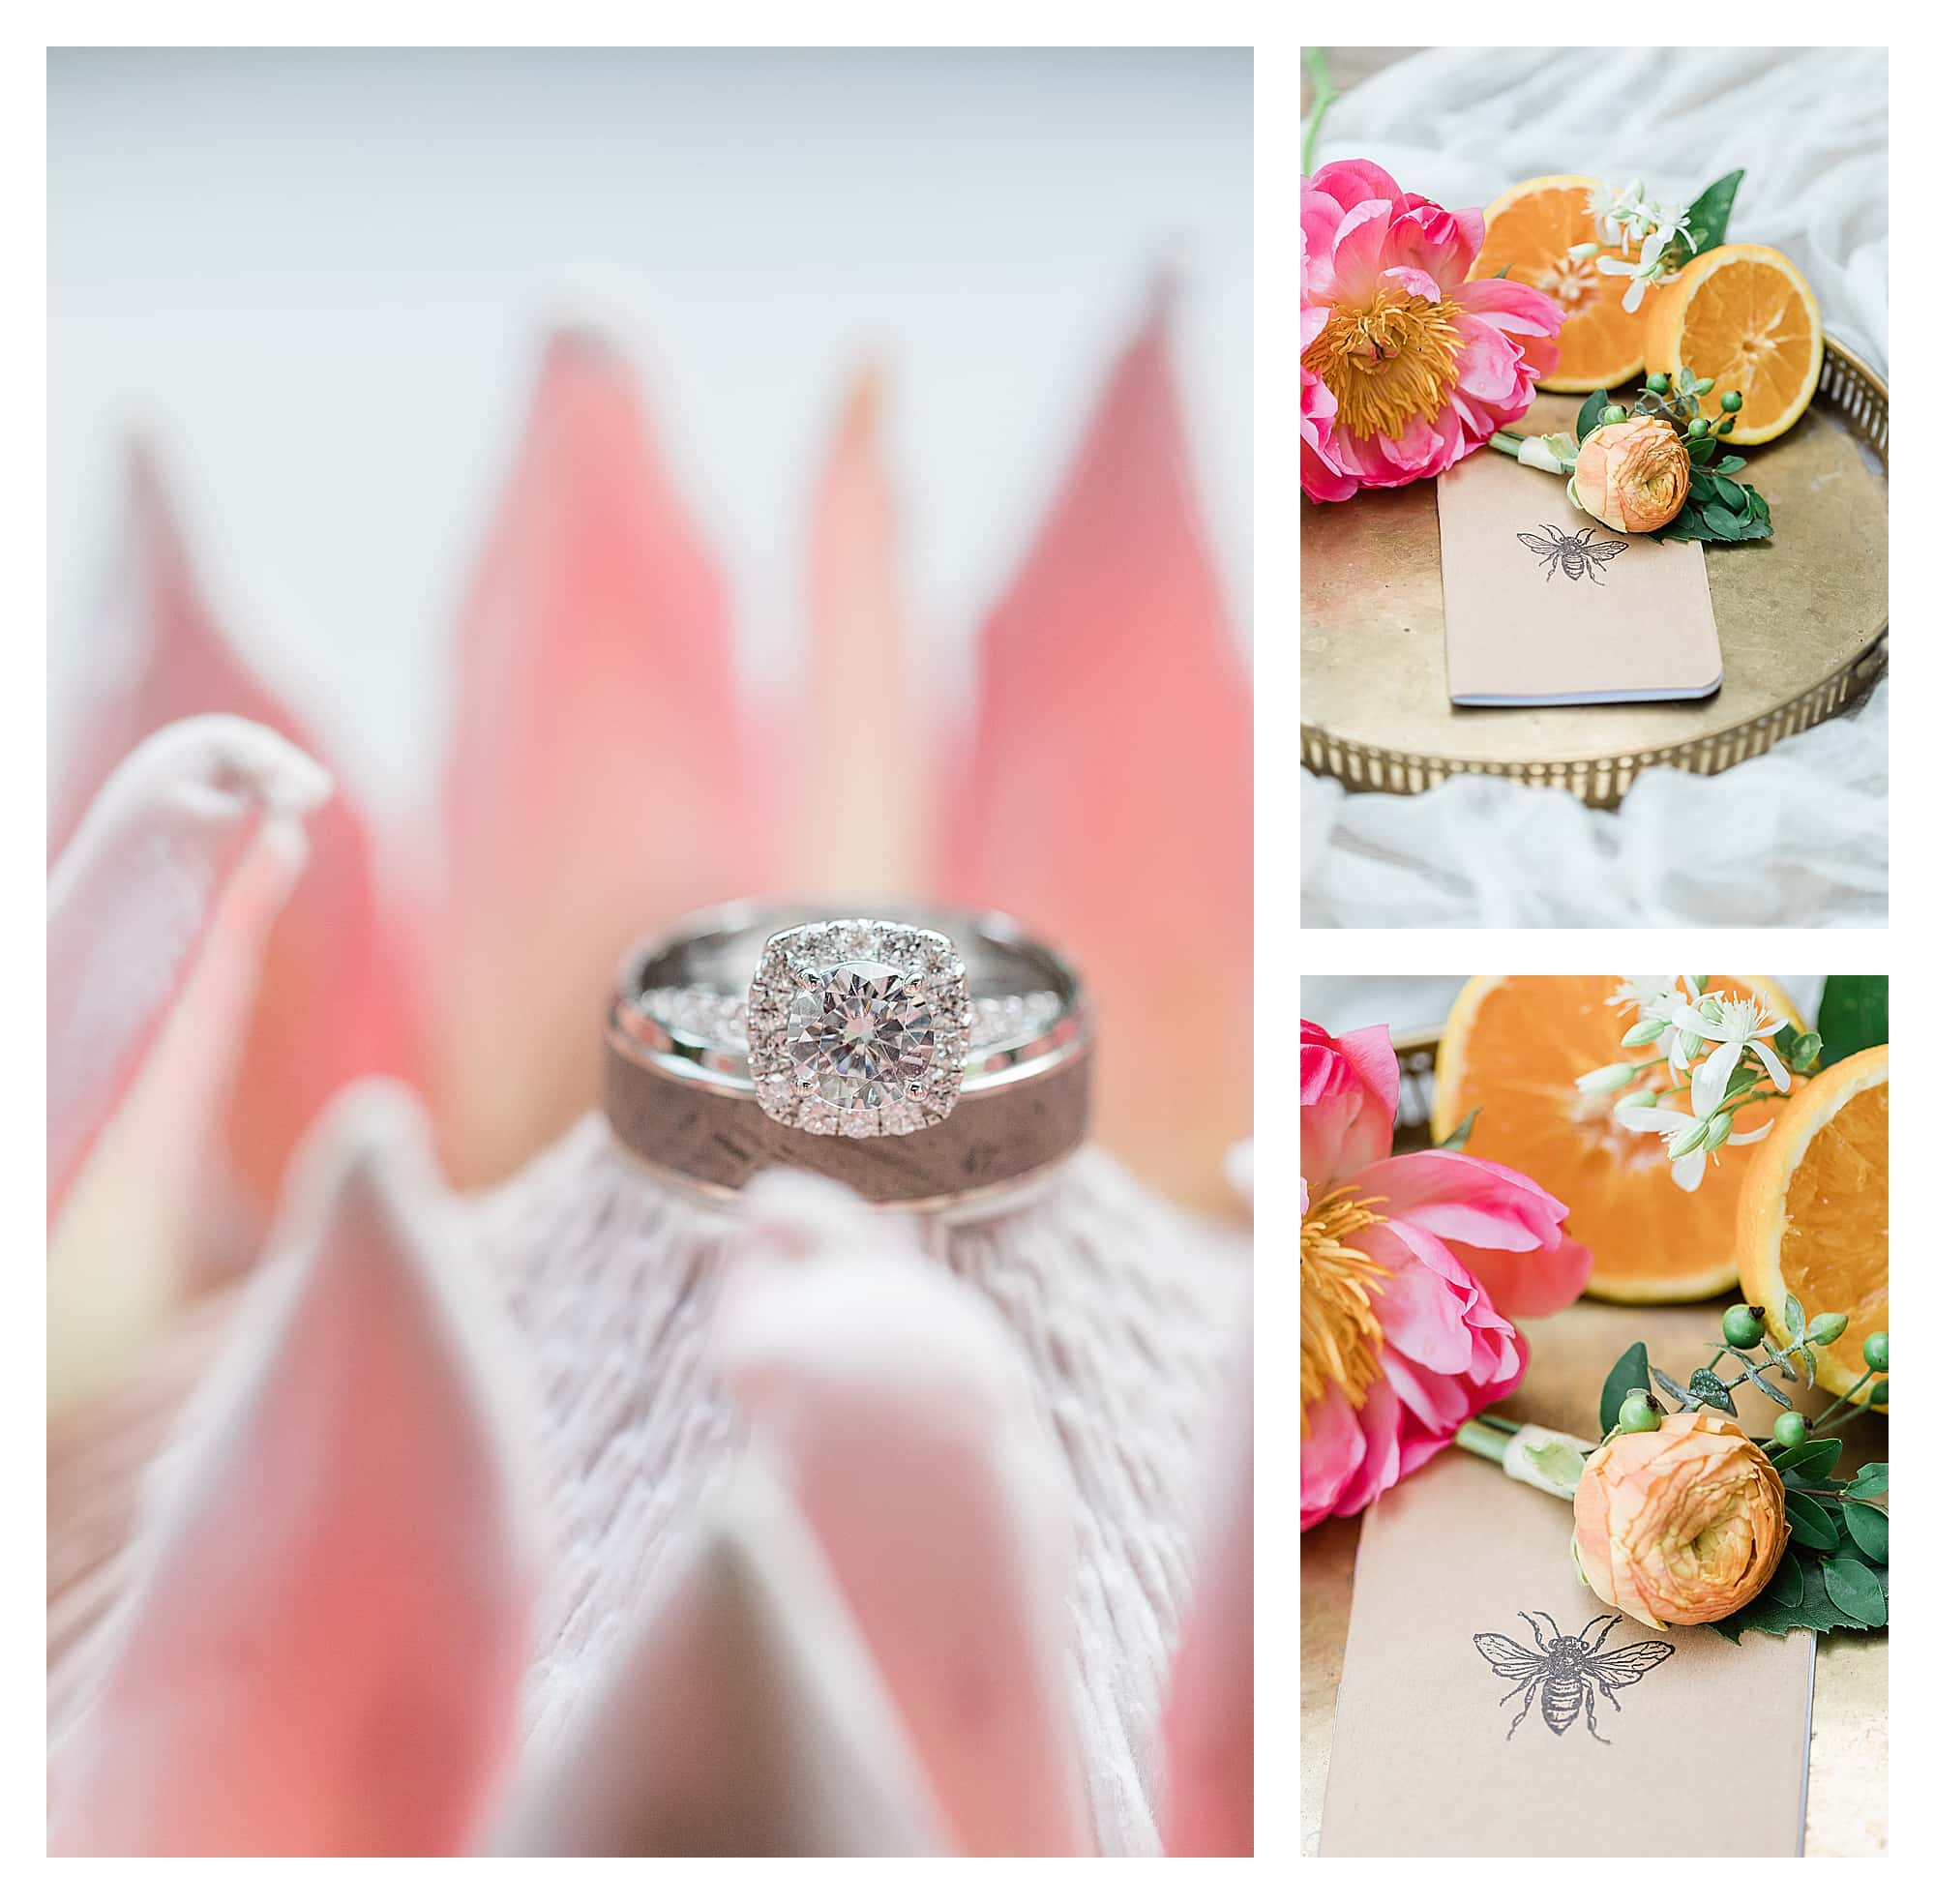 Wedding rings on flower and peach wedding boutonniere